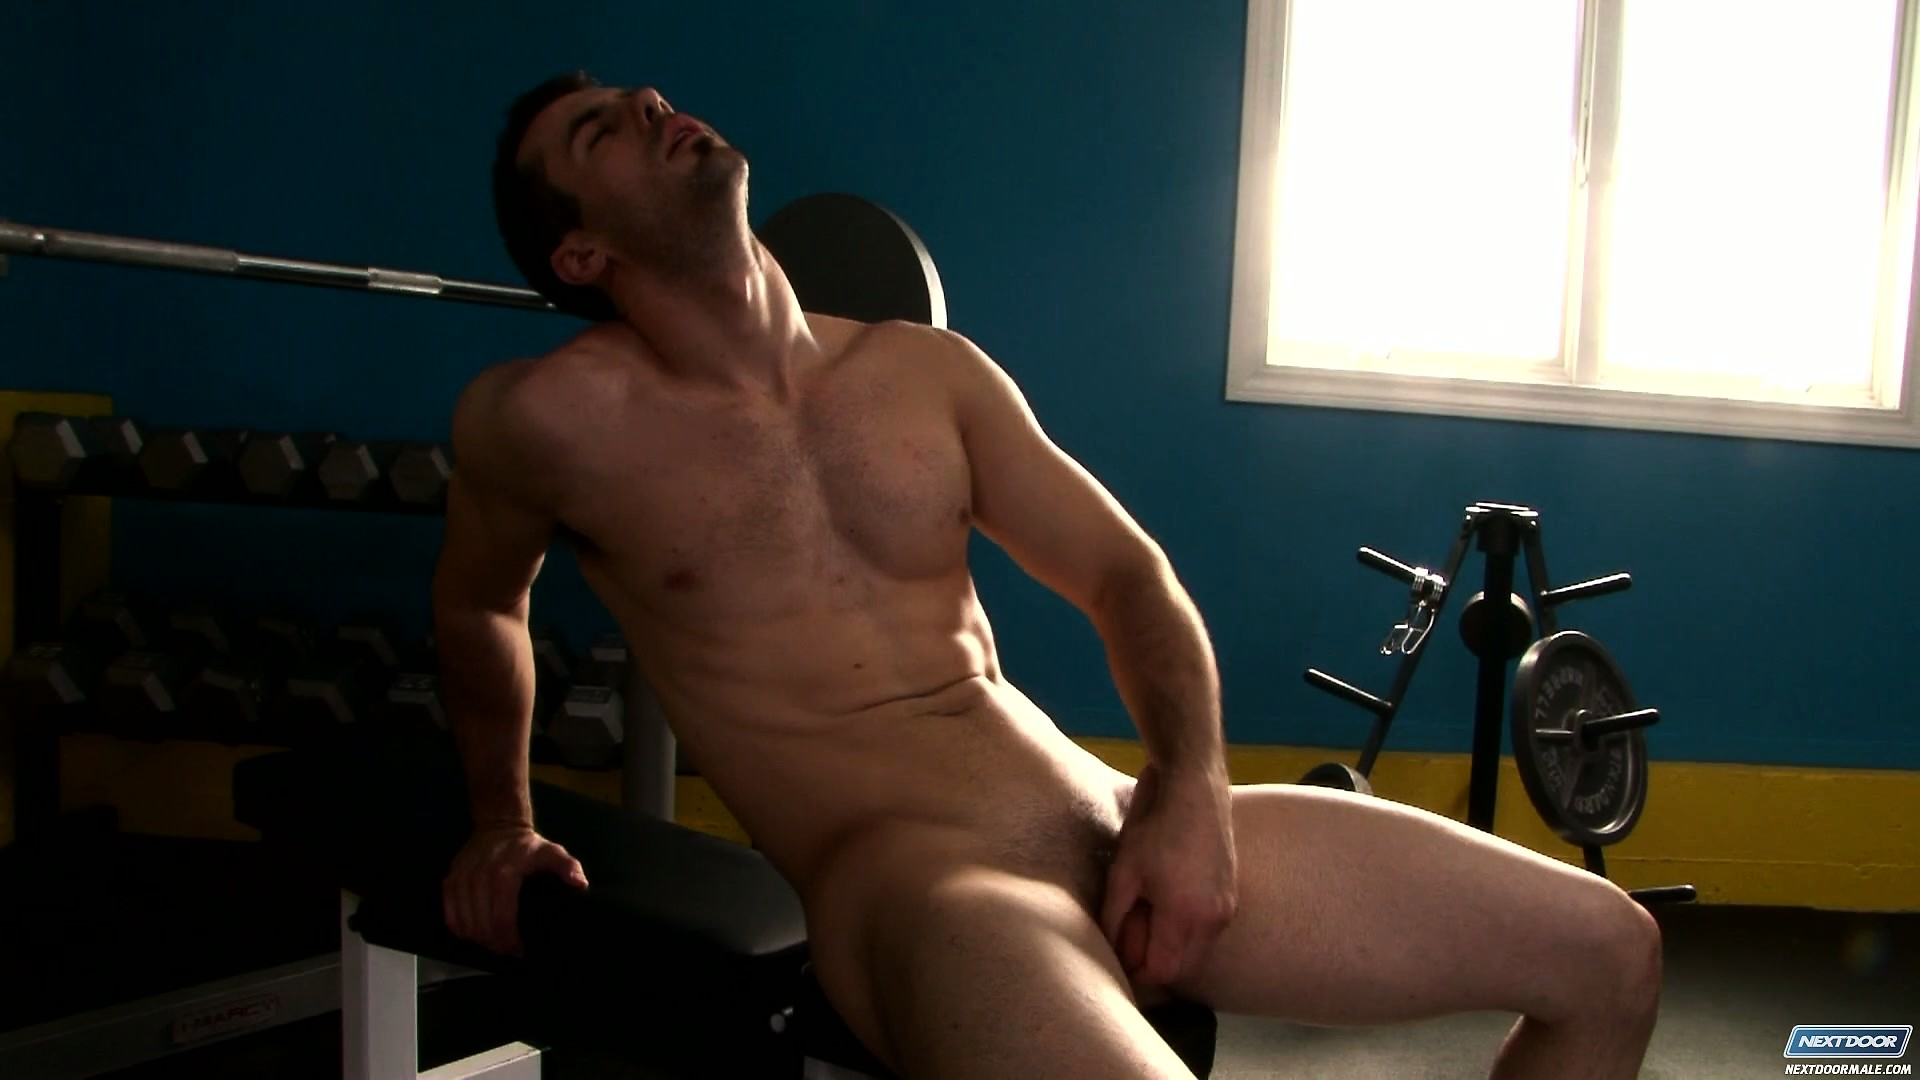 Porno Video of Brock Cooper Takes A Break From His Workout Session To Satisfy His Urges And Needs